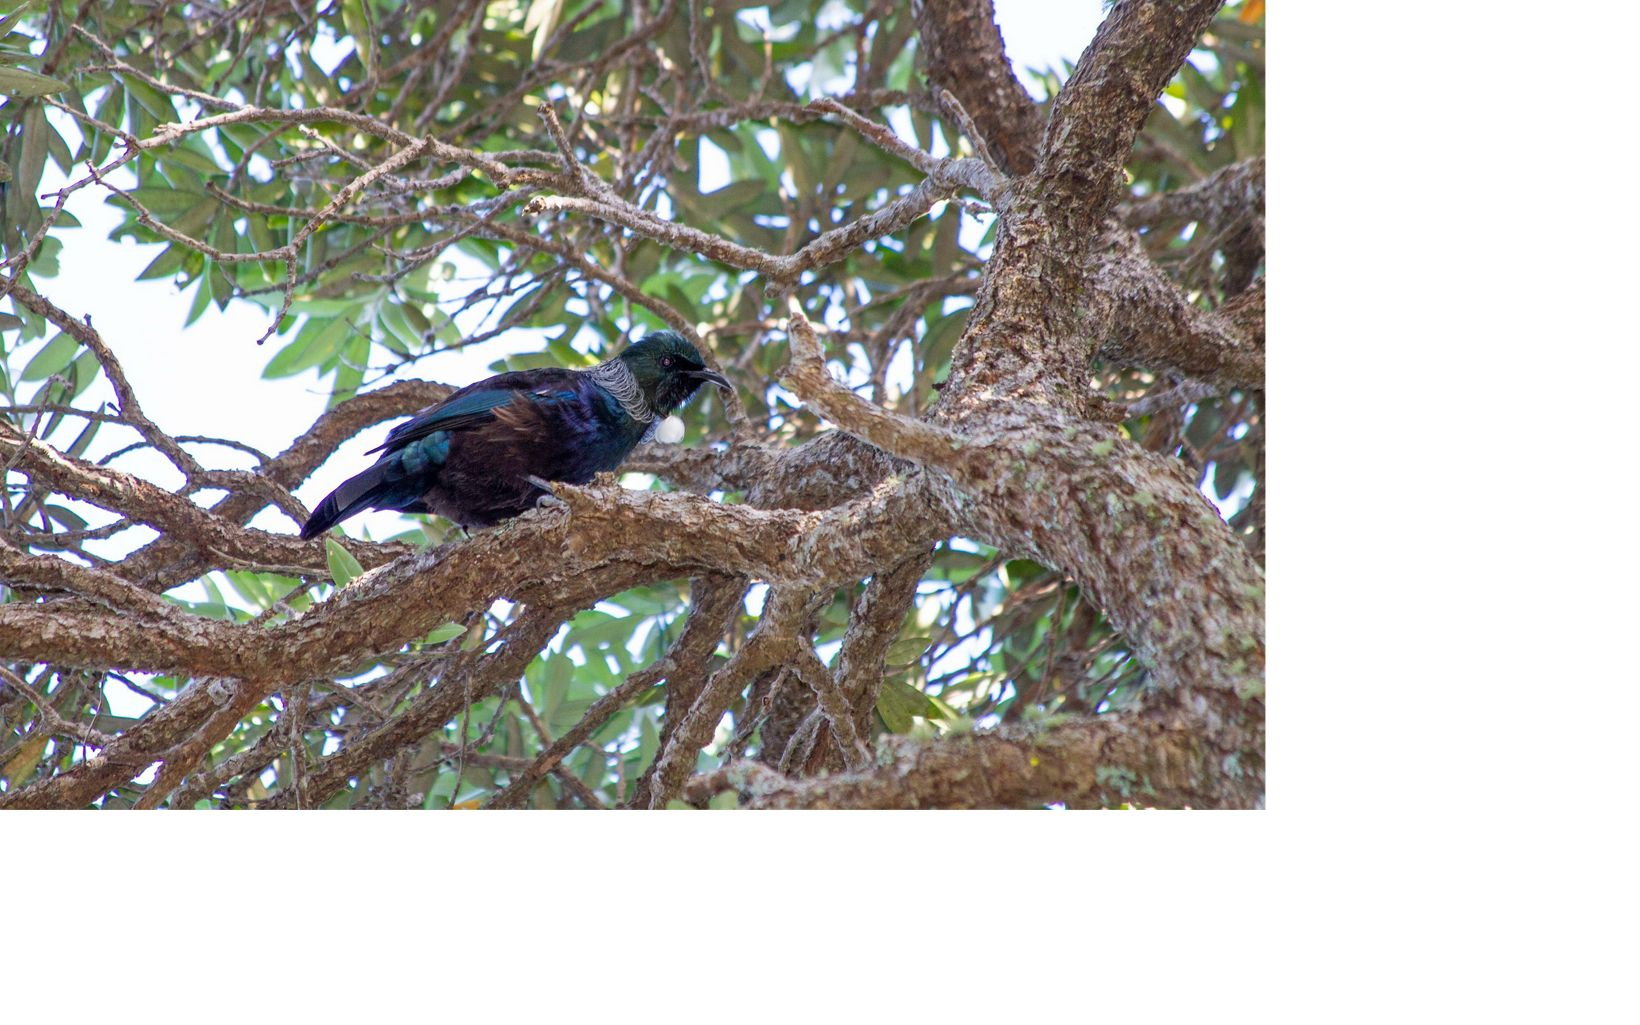 An endemic species that can be found throughout Aotearoa New Zealand, the Tui can imitate sound much like a parrot and has two small white tufts of feathers at its neck.